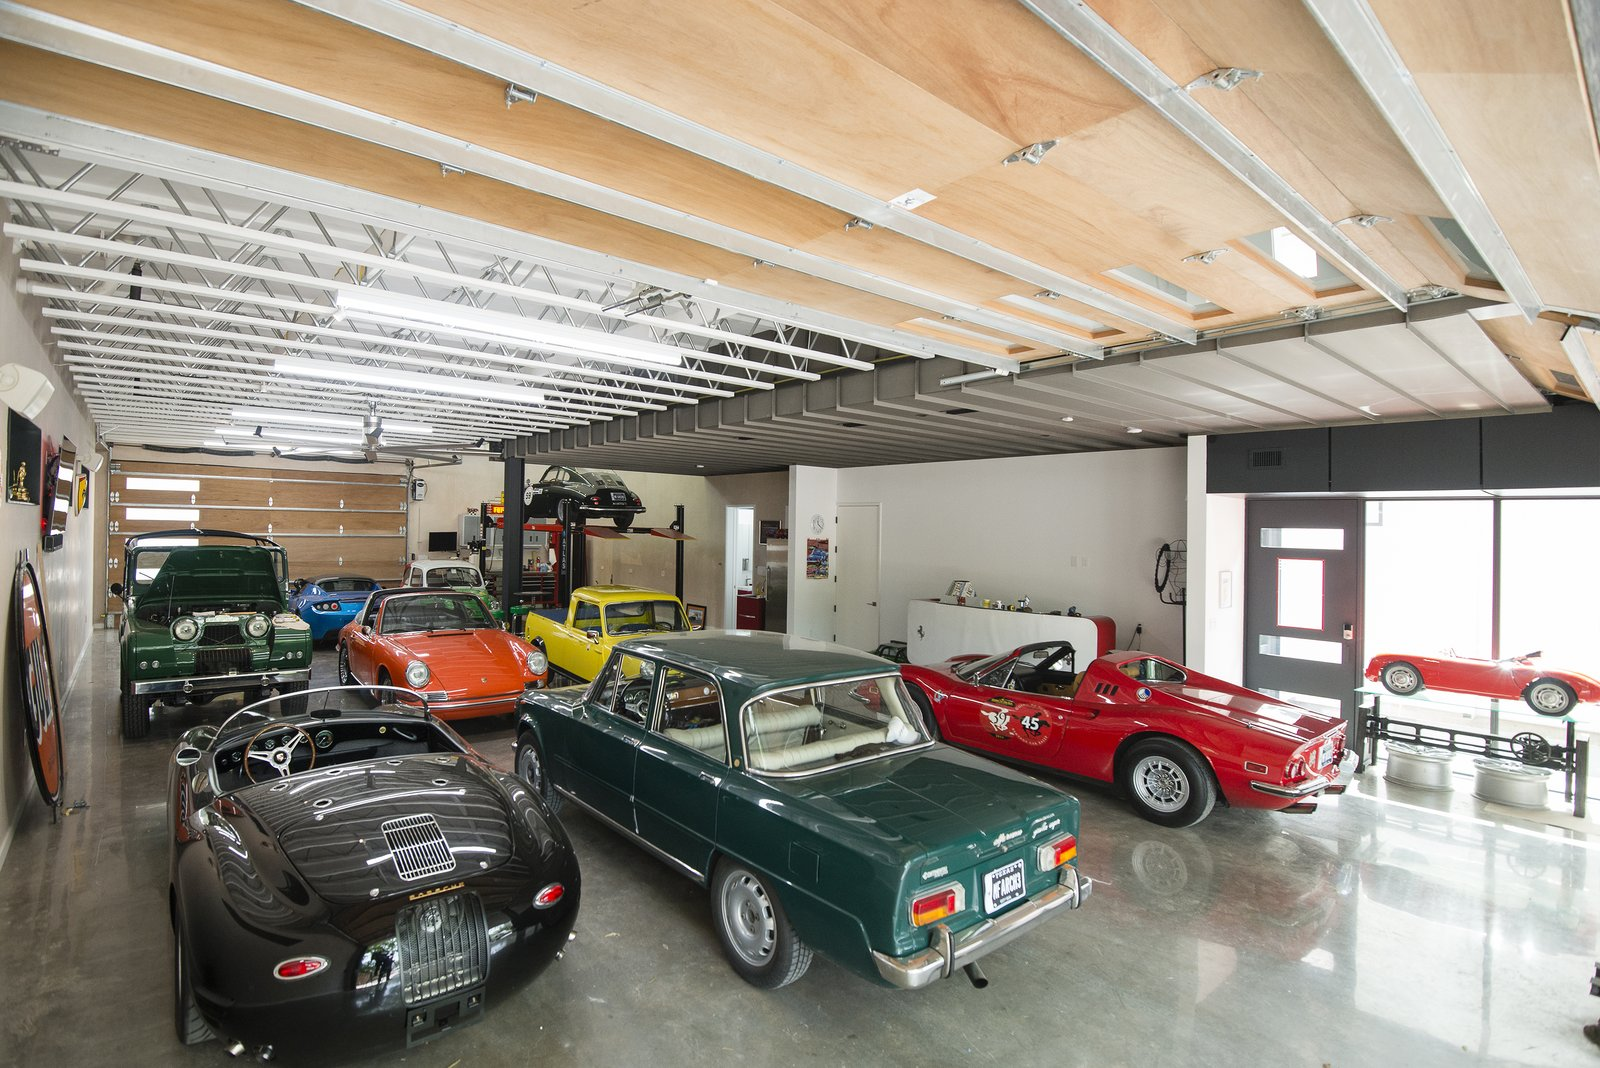 Garage and Attached Garage Room Type  Photo 5 of 21 in This Austin Home Was Designed to Showcase a Vintage Car Collection